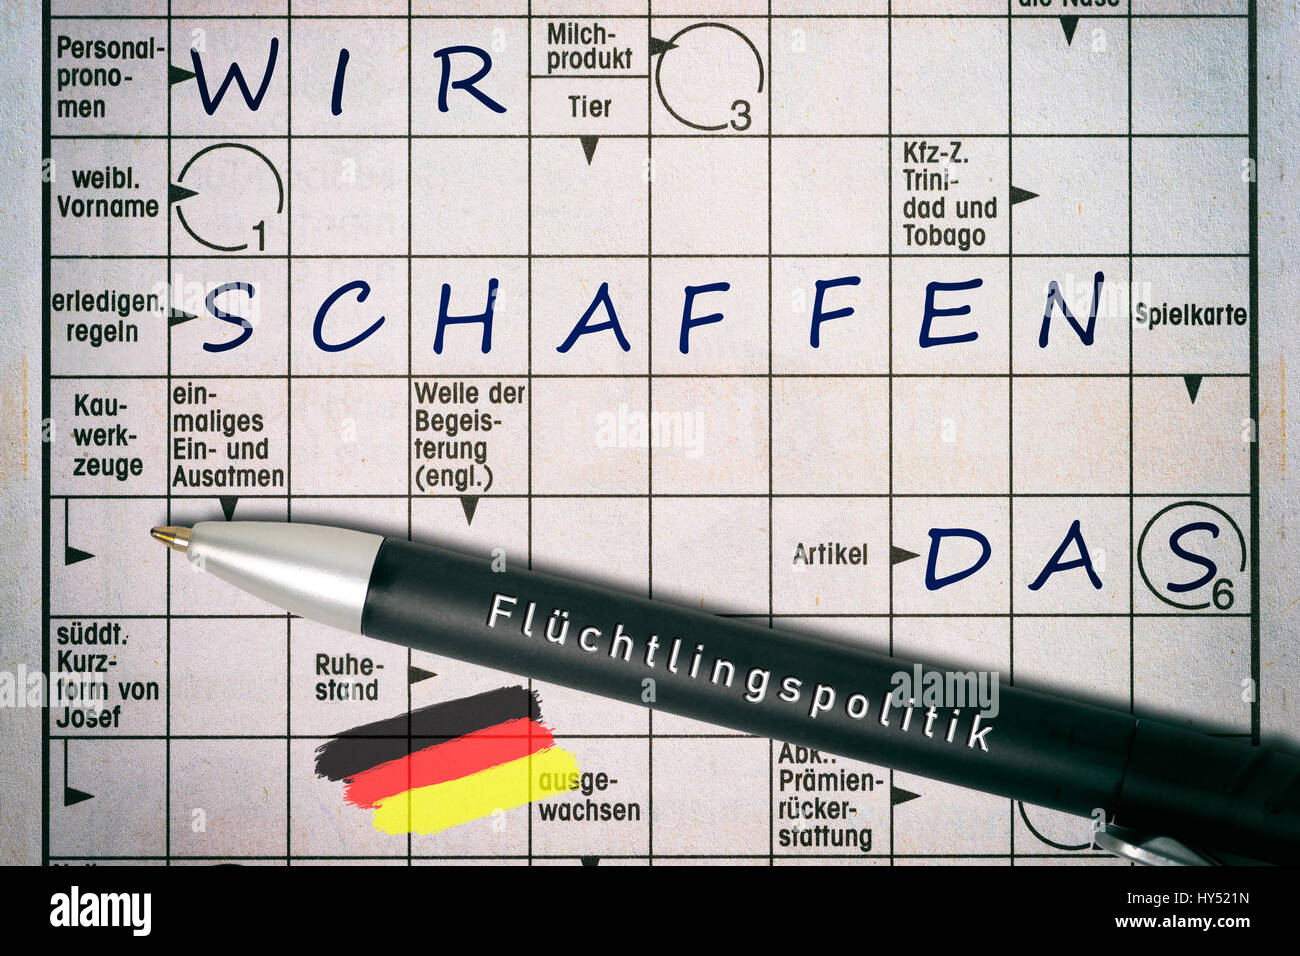 Crossword puzzles with the concepts we, create, the label Refugee policy on a ballpoint pen, Kreuzwortraetsel mit - Stock Image